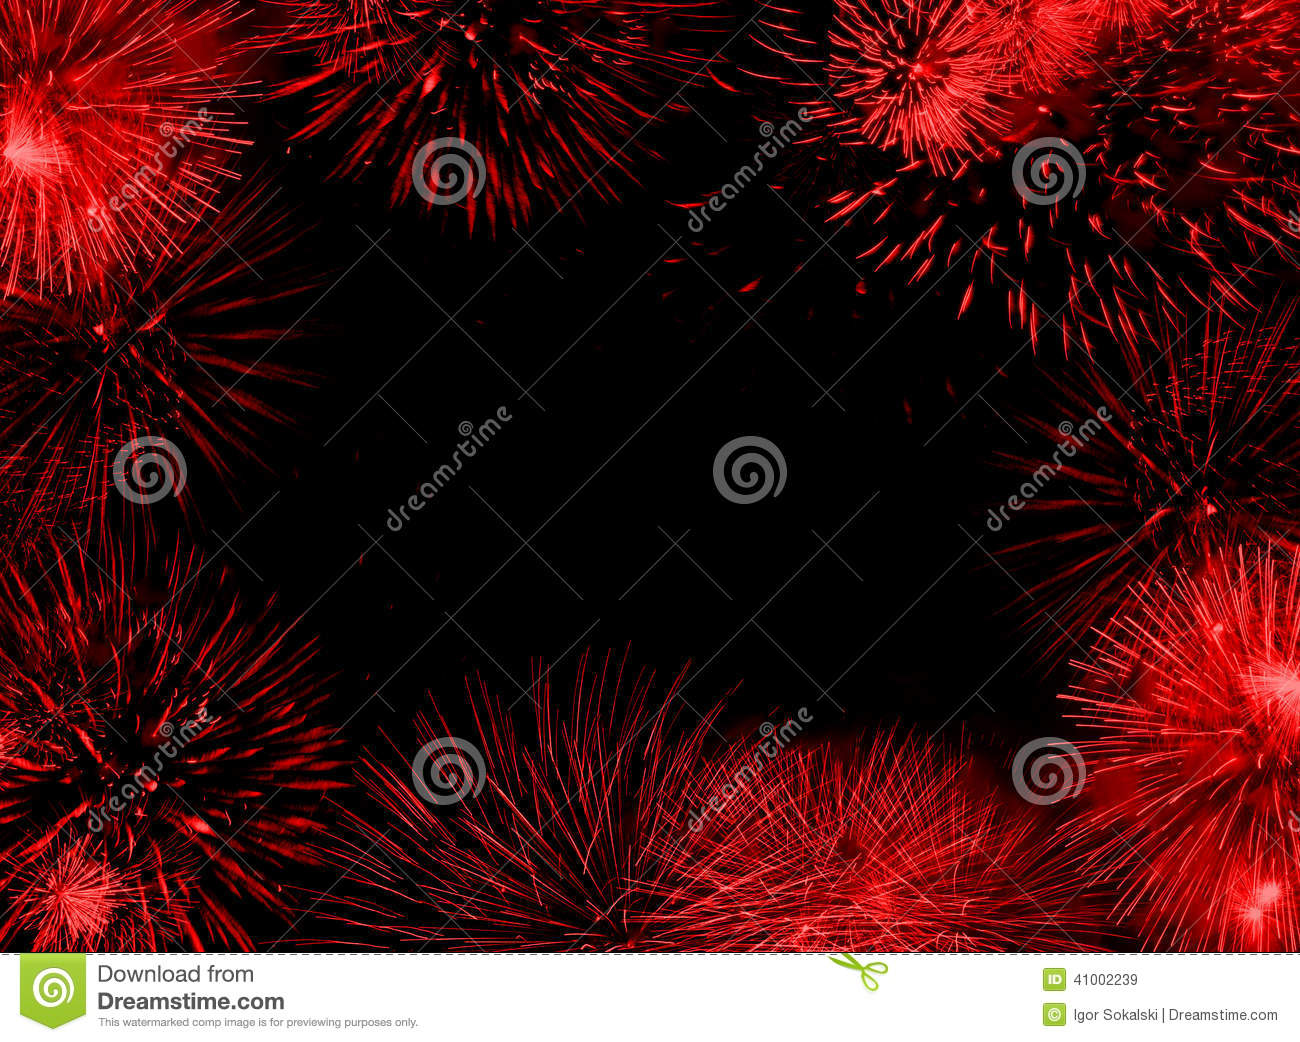 Red Fireworks Free Stock Photo: Red Fireworks Frame Stock Photo